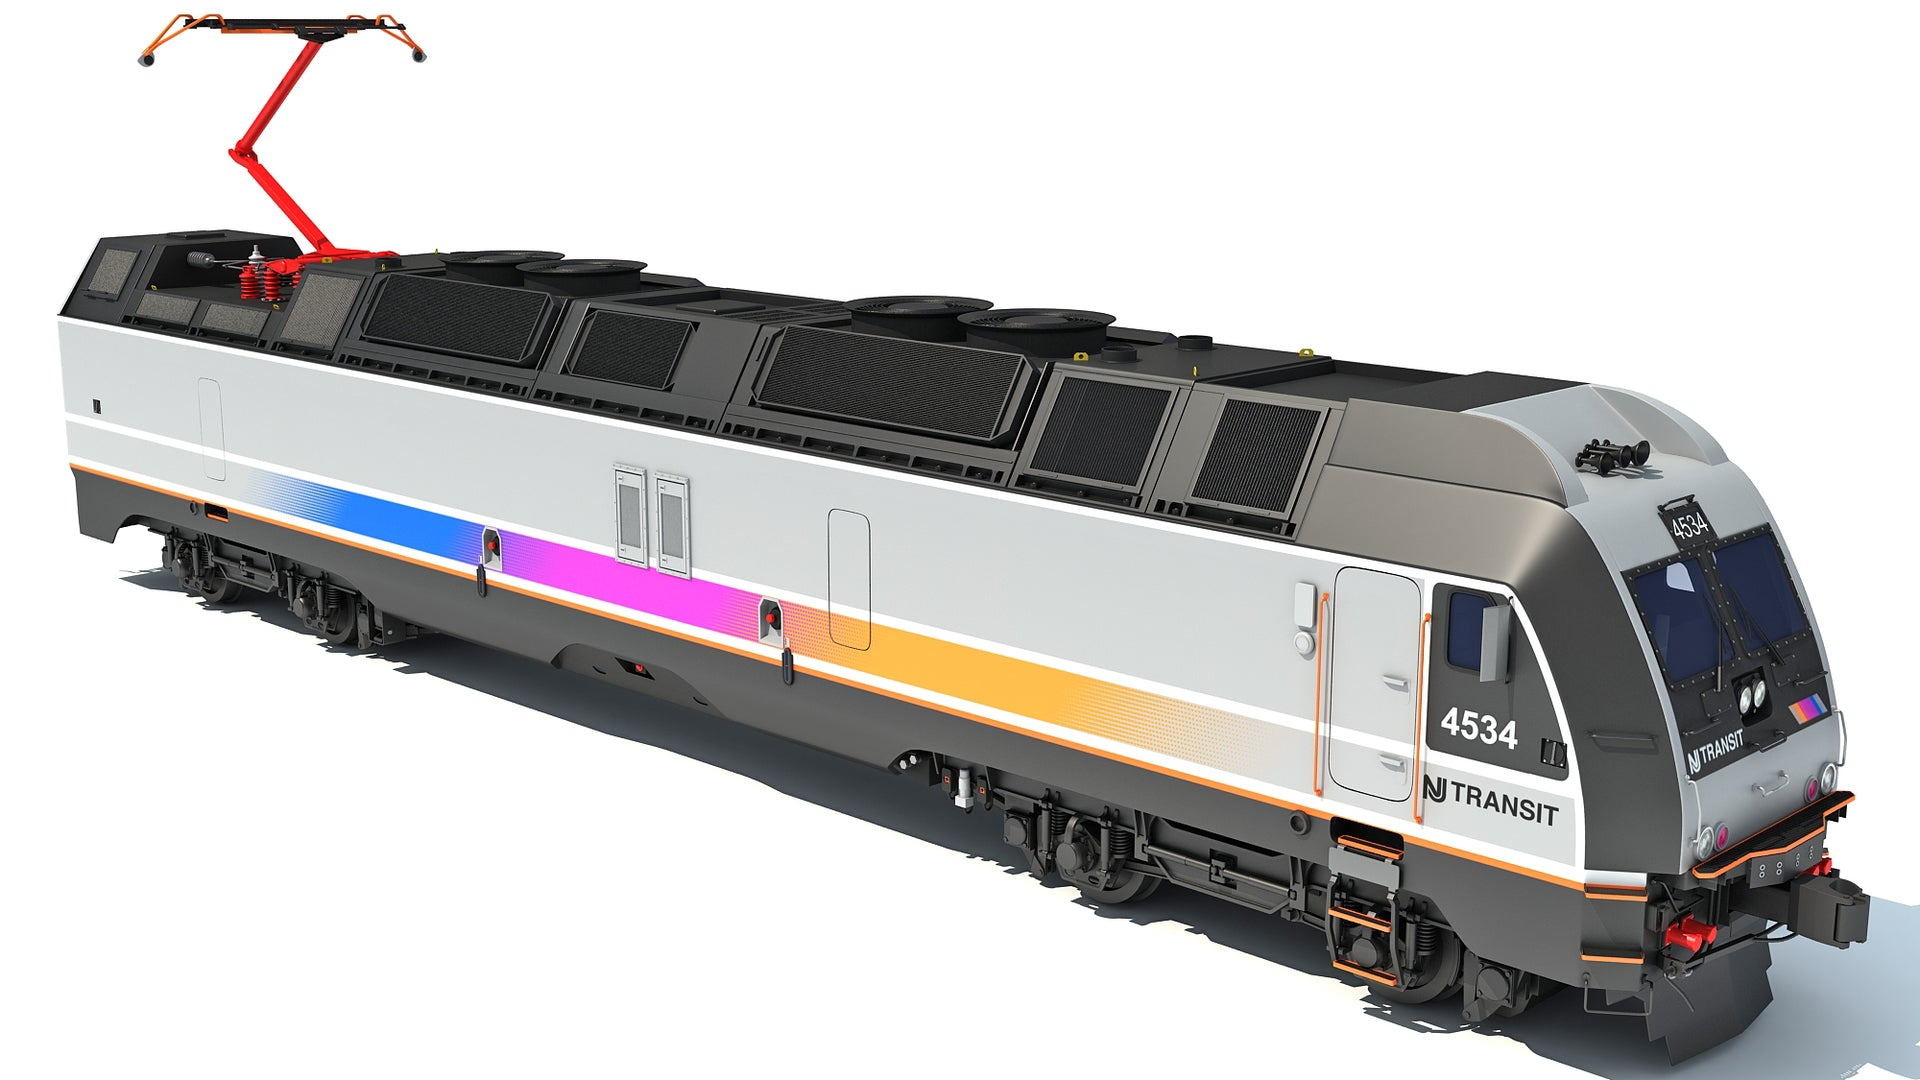 NJ Transit Locomotive Train